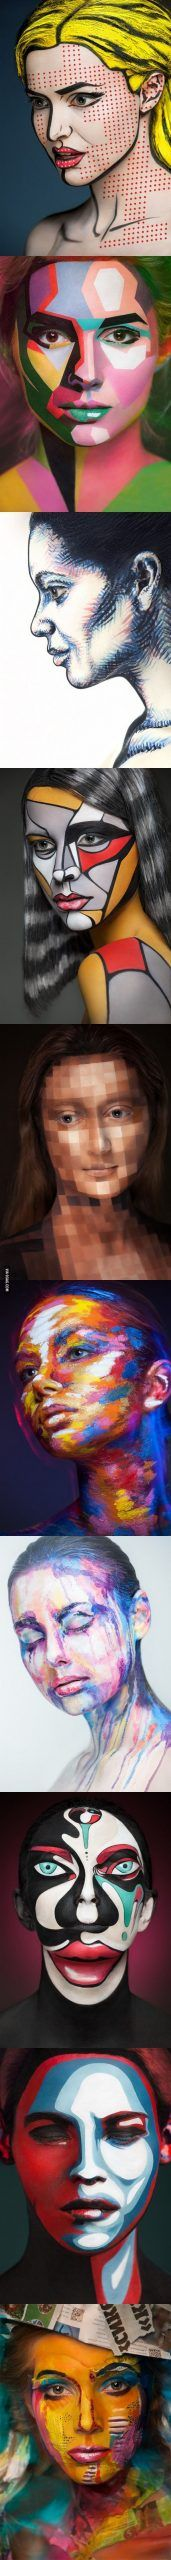 Incredible photographs of people wearing face paint  #BodyPainting #incredible #paint #people #photographs #wearing